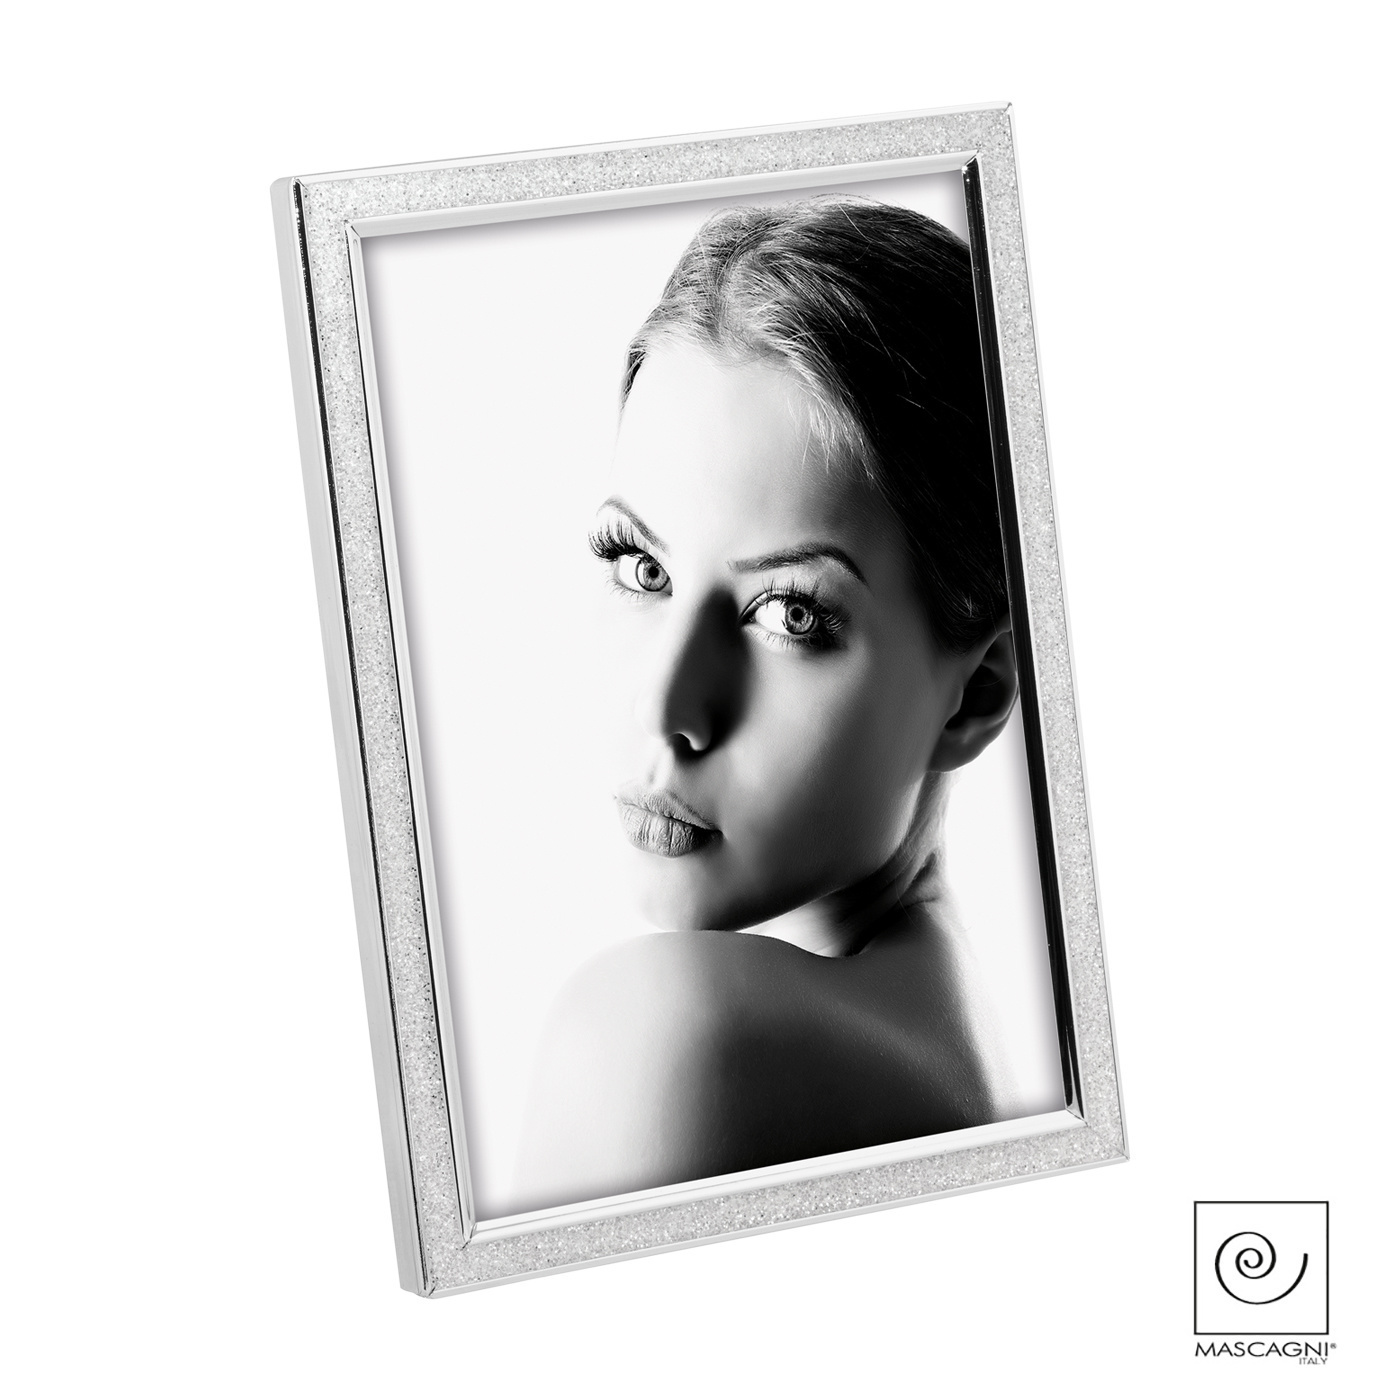 Art Mascagni A1066 PHOTO FRAME 10X15 - COL.SILVER